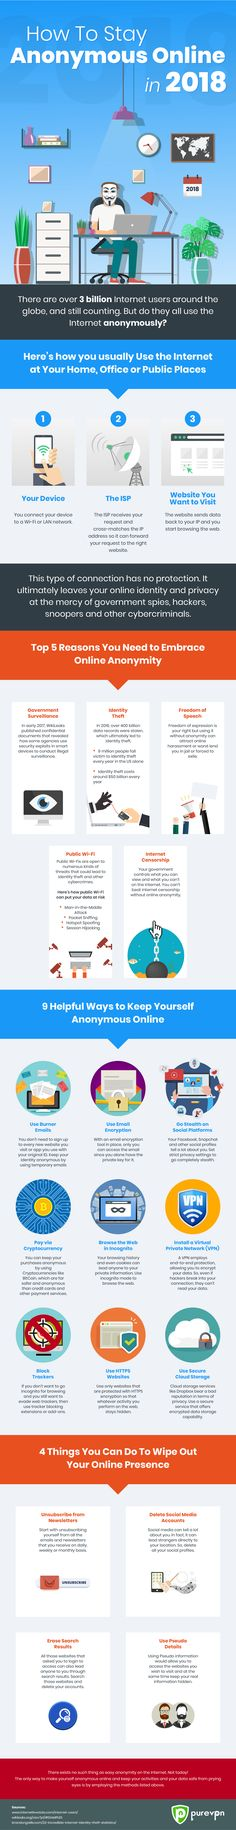 How Much Your Health Impacts Your Wealth Infographic How To Stay Anonymous Online In  Infographic